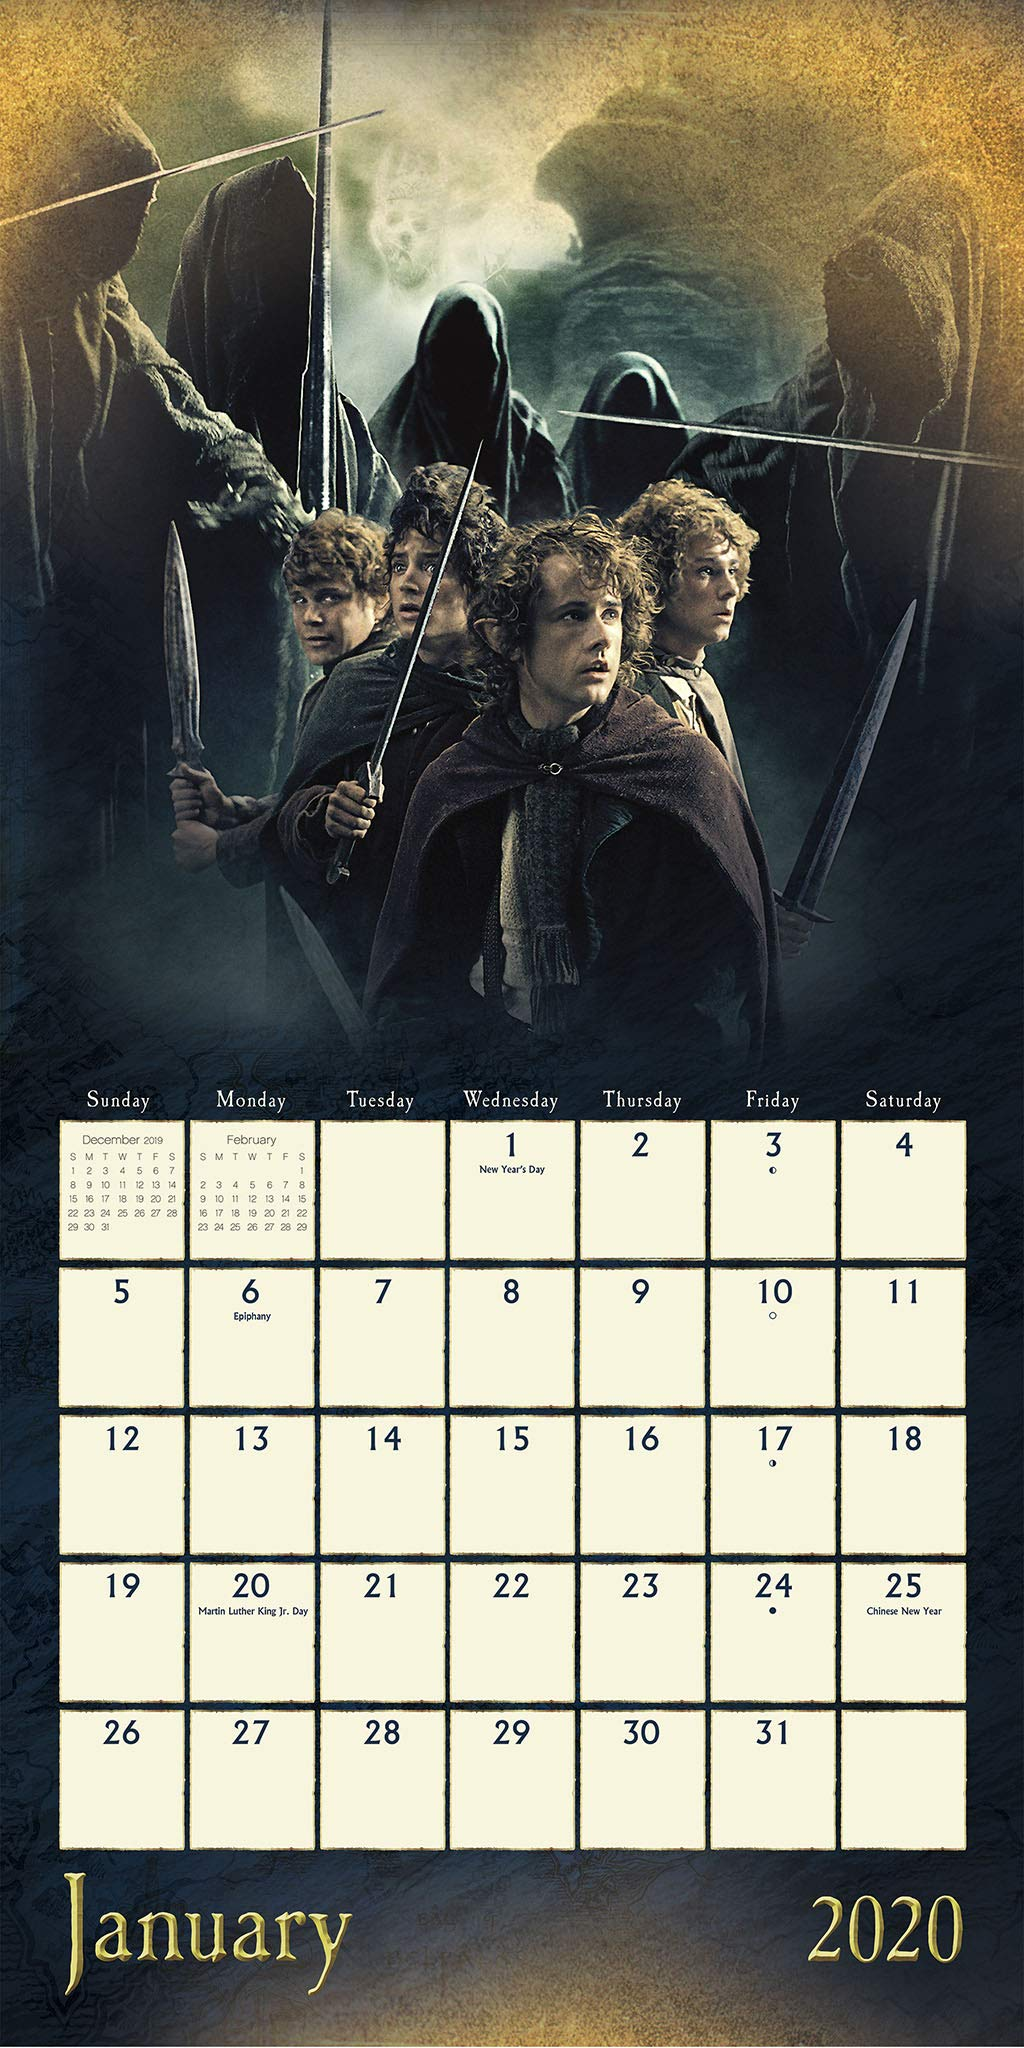 Amazon Com The Lord Of The Rings 2020 Wall Calendar 0057668206428 Trends International Books